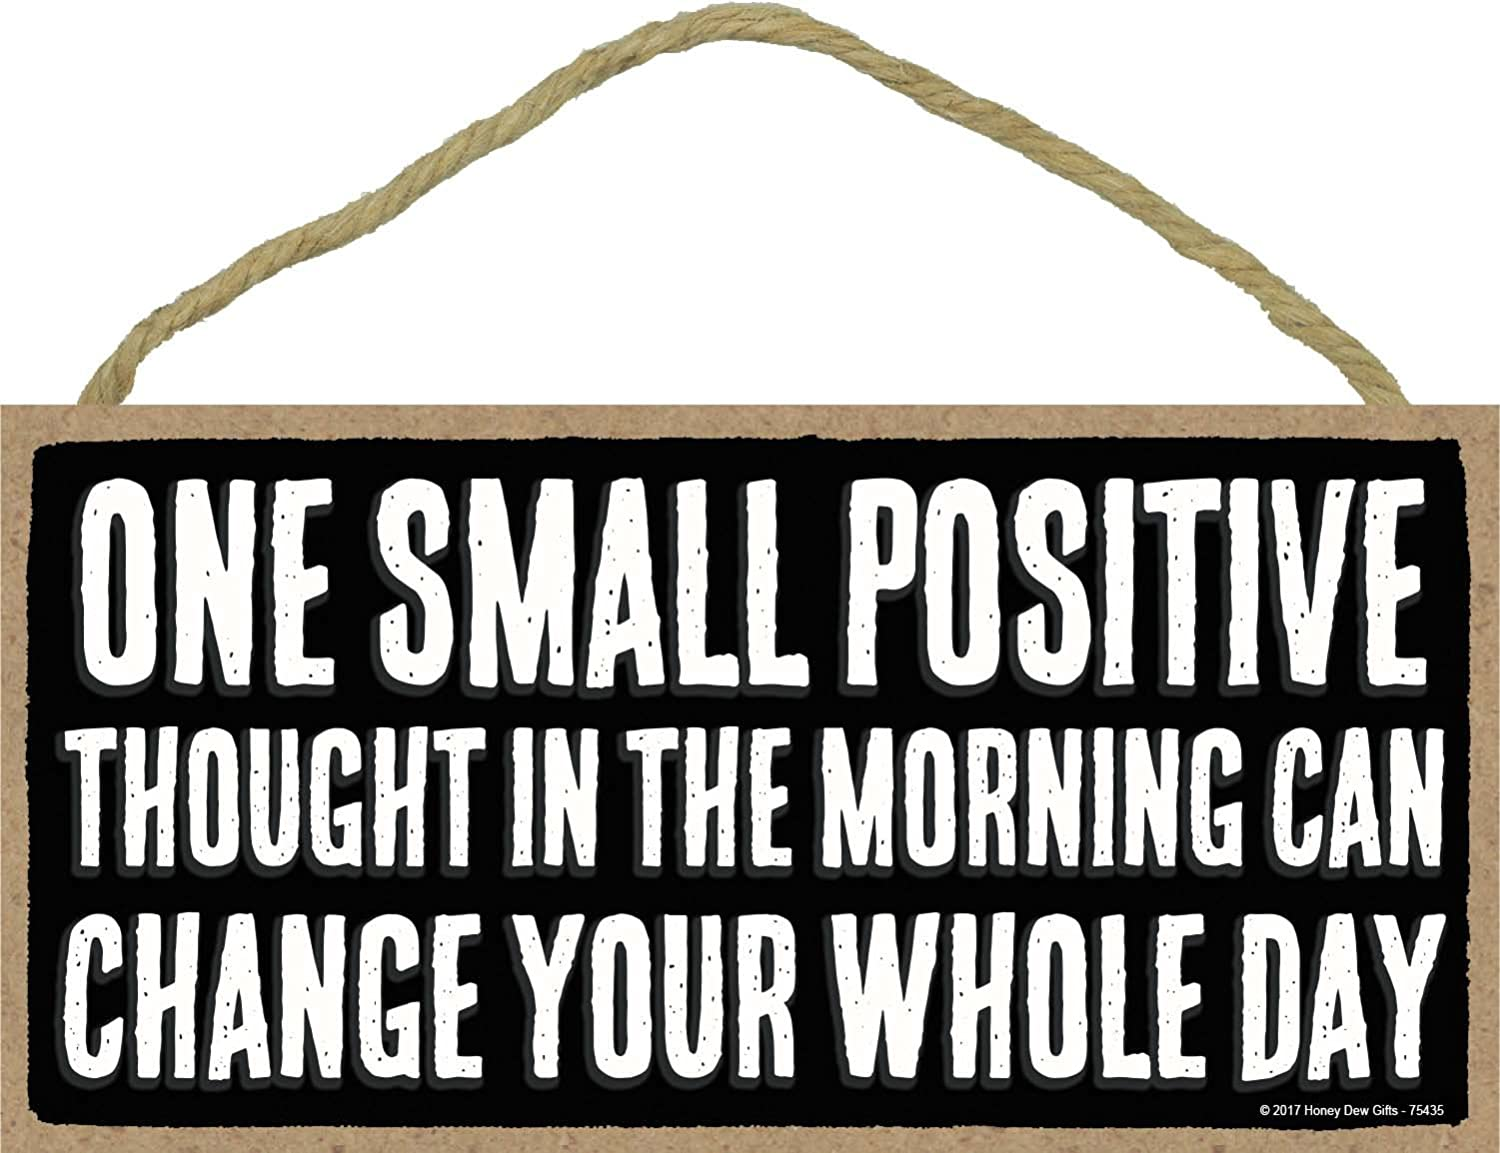 One Small Positive Thought Can Change Your Whole Day - 5 x 10 inch Hanging, Wall Art, Decorative Wood Sign Home Decor